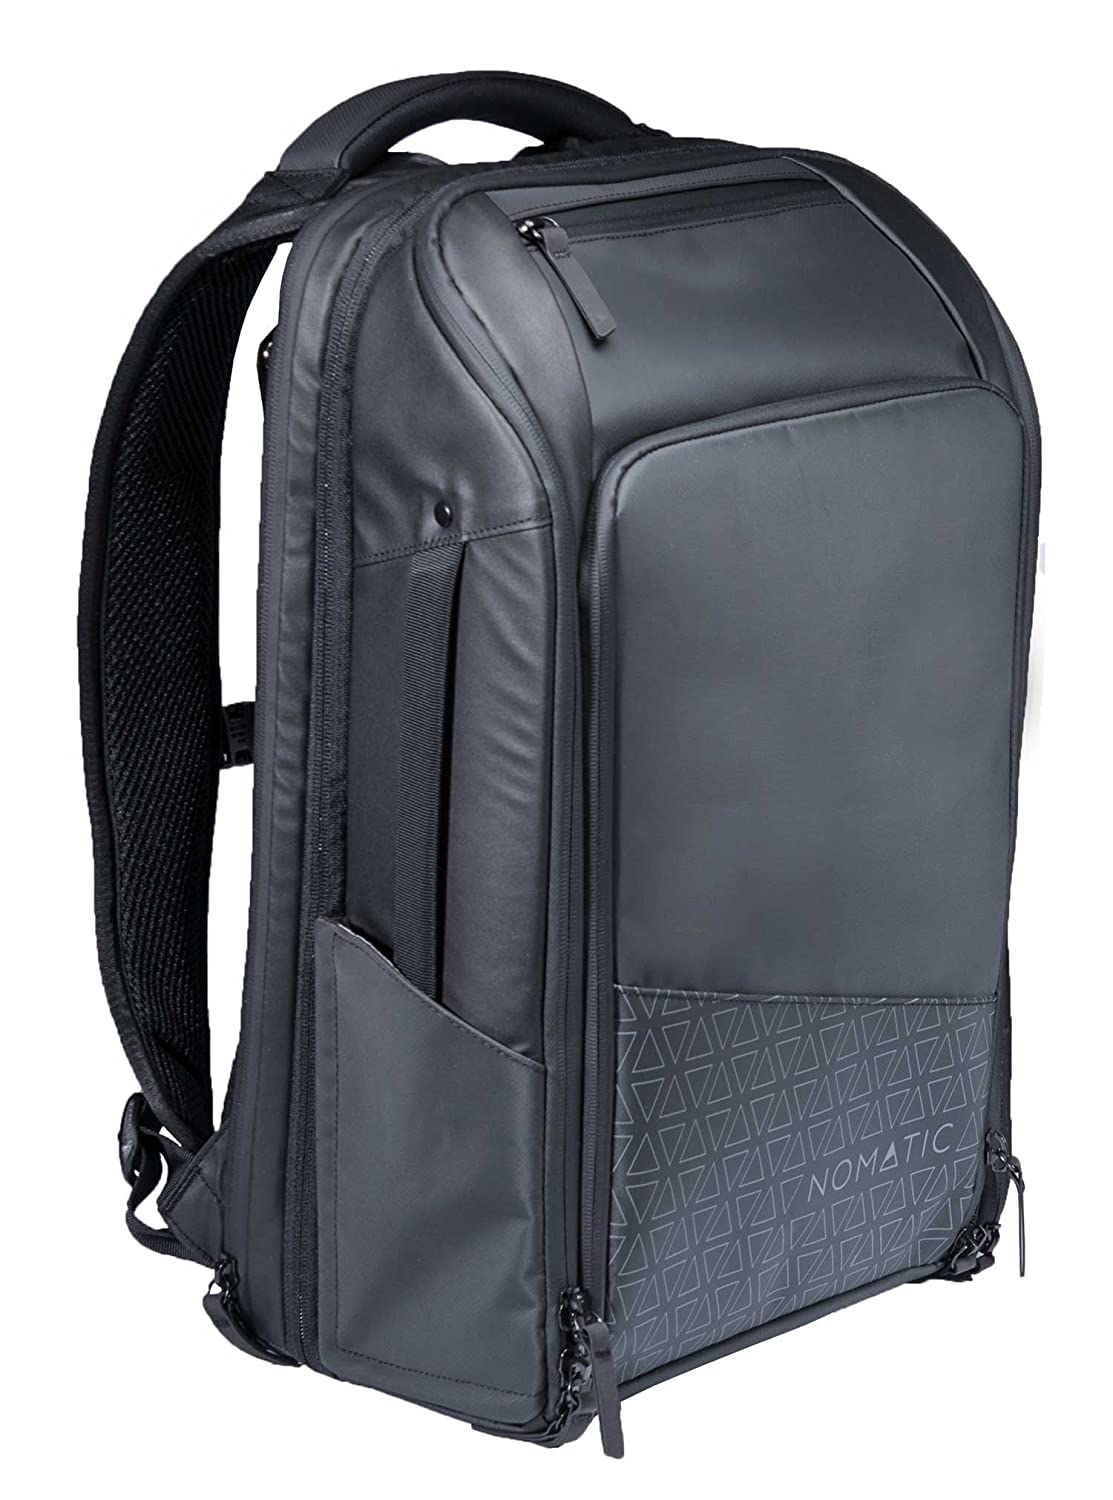 eb5b2742fff6 Amazon.com  NOMATIC Travel Pack- Black Water Resistant Anti-Theft 30L  Flight Approved Carry on Laptop Bag Computer Backpack  Electronics